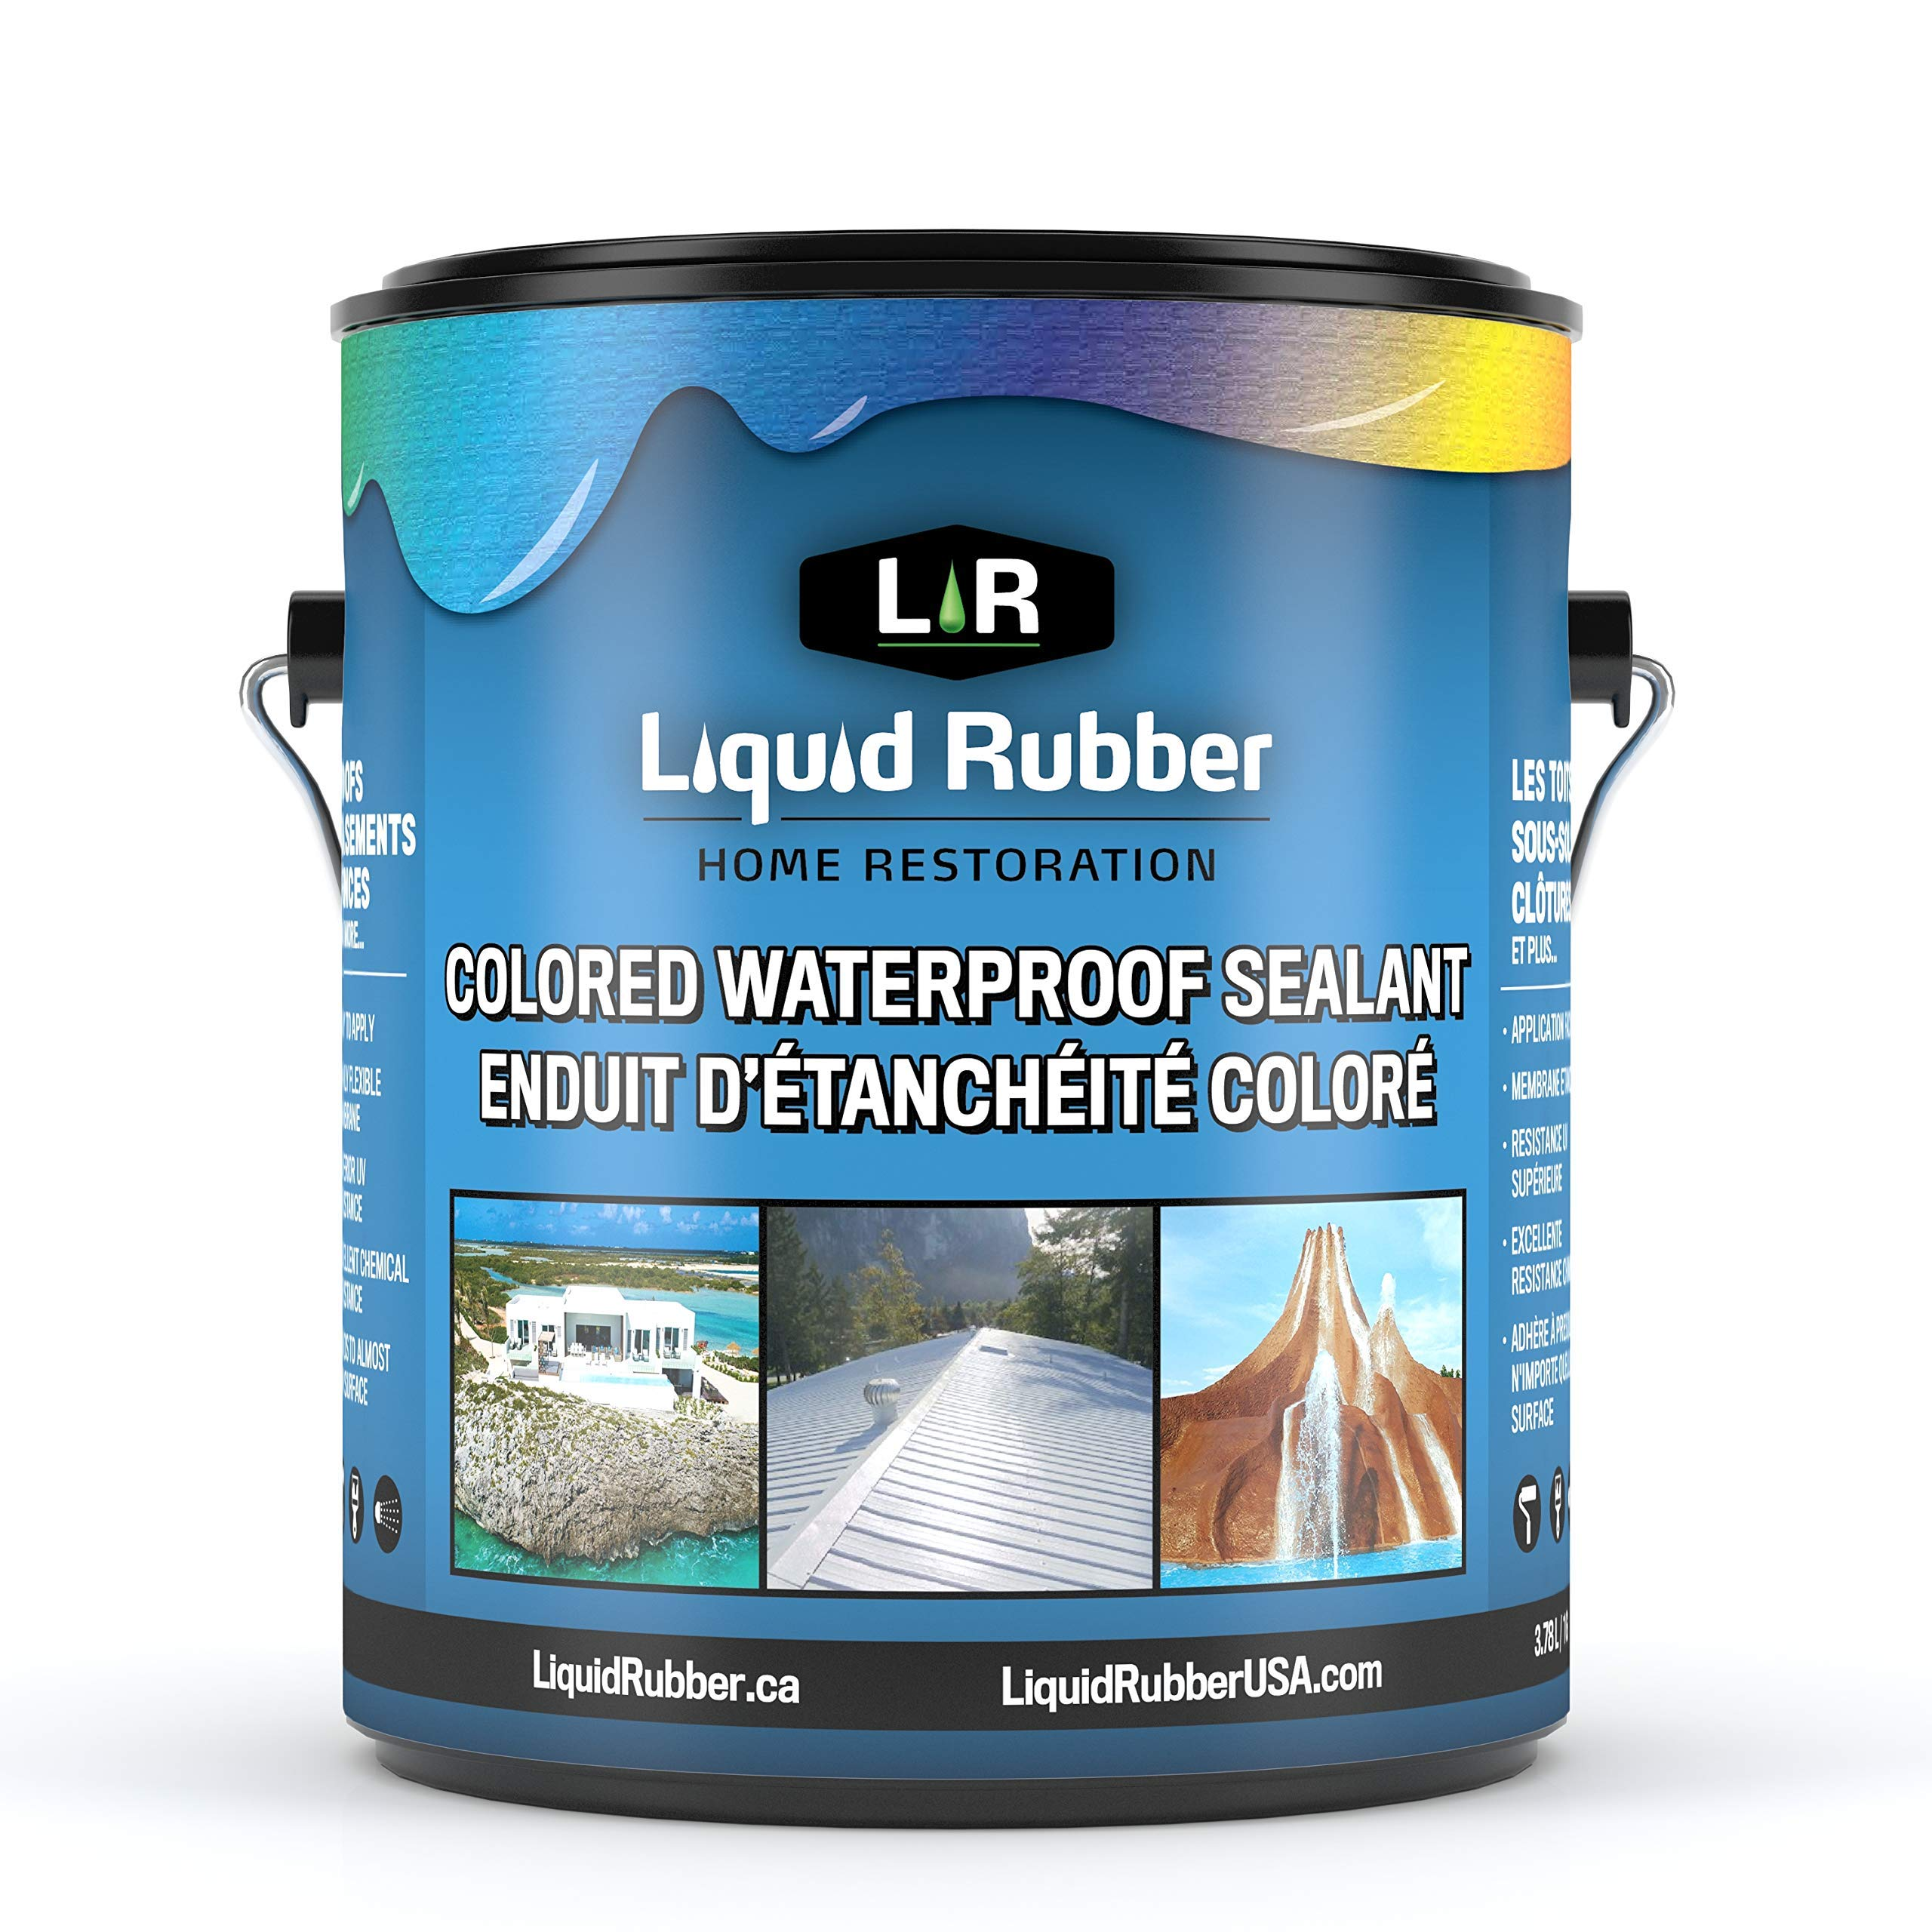 Liquid Rubber Color Waterproof Sealant/Coating - Indoor & Outdoor Use | Easy to Apply | Water Based | Light Gray | 1 Gallon product image